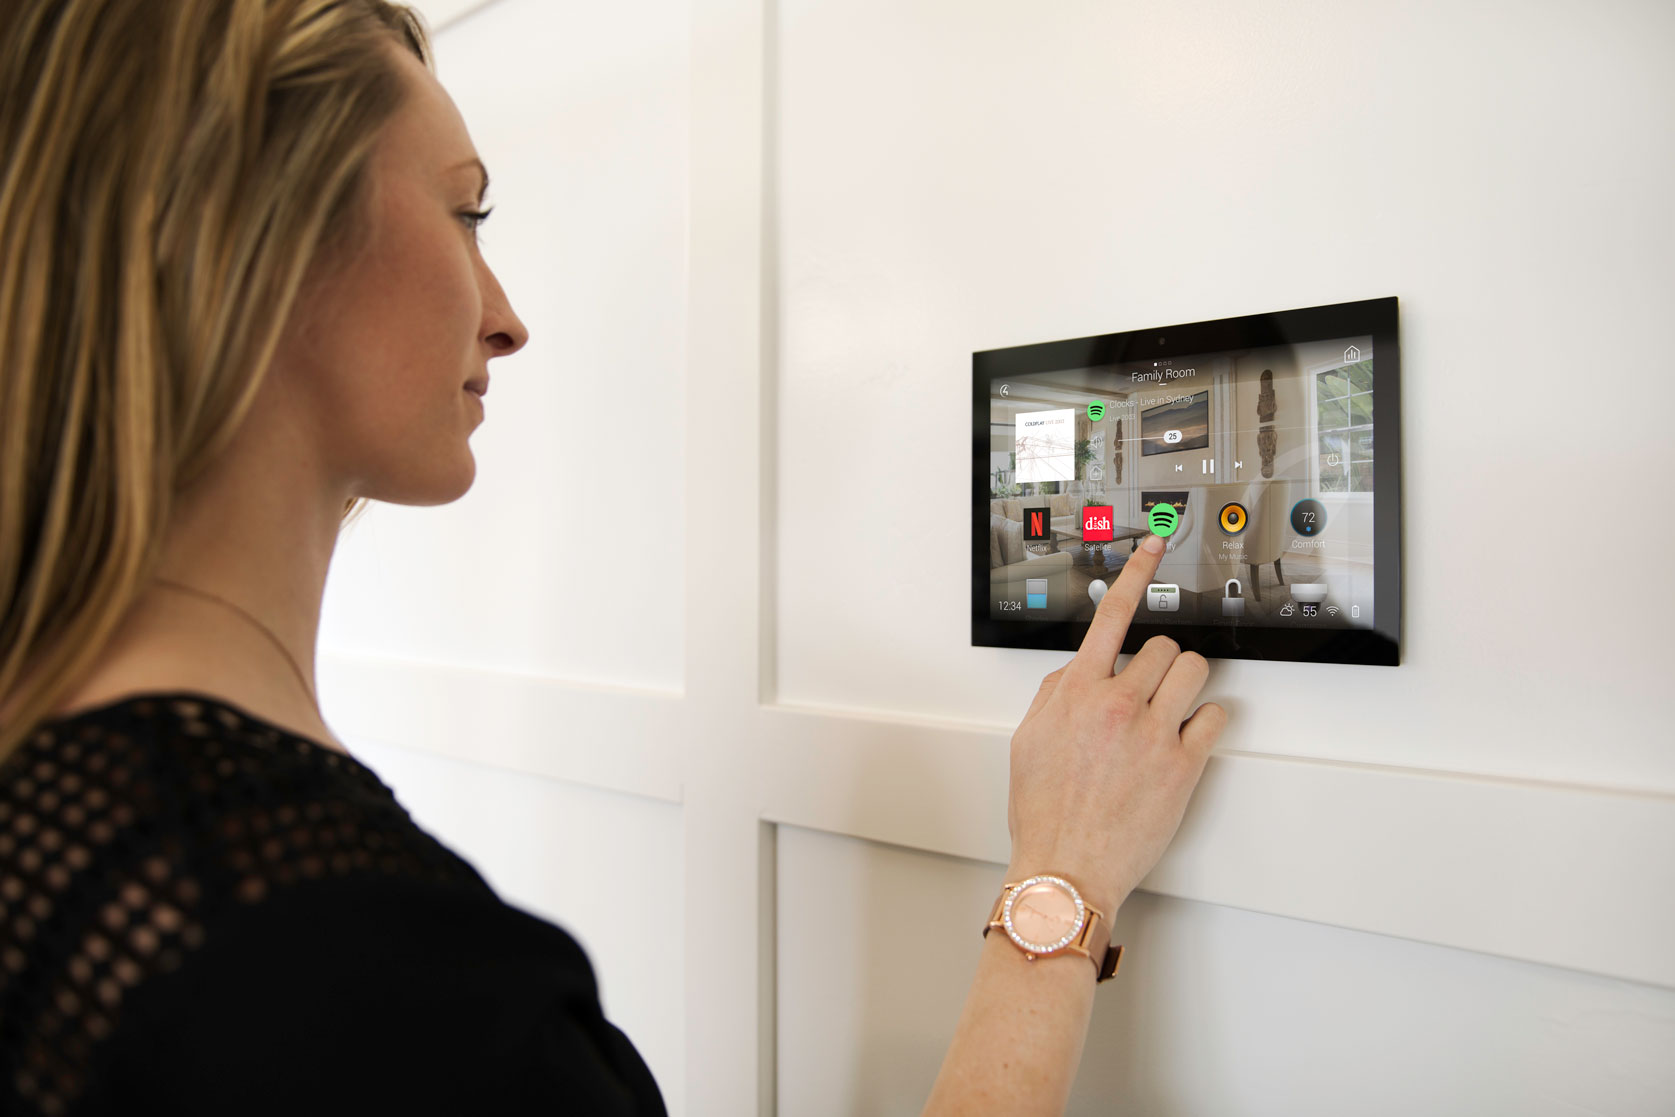 control4 touch screen on wall woman